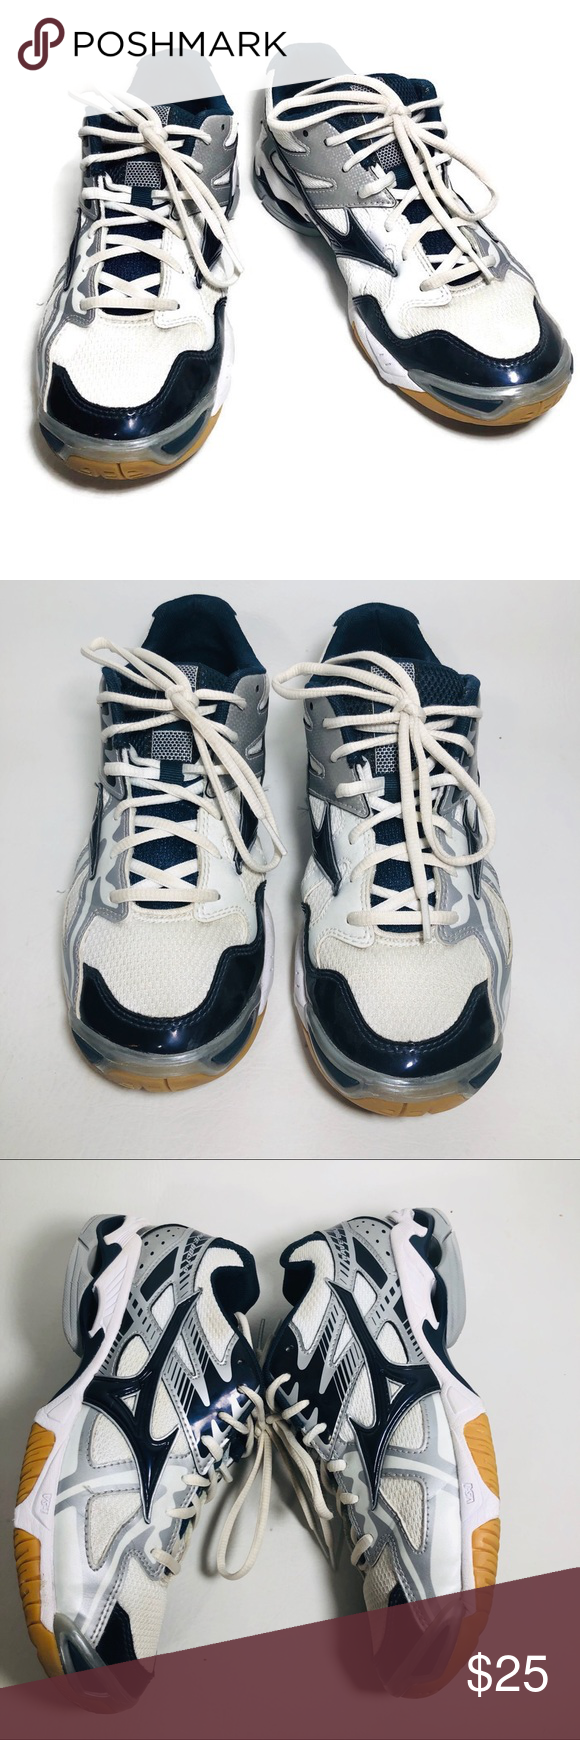 Mizuno Wave Bolt 4 Volleyball Shoes Volleyball Shoes Mizuno Shoes Mizuno